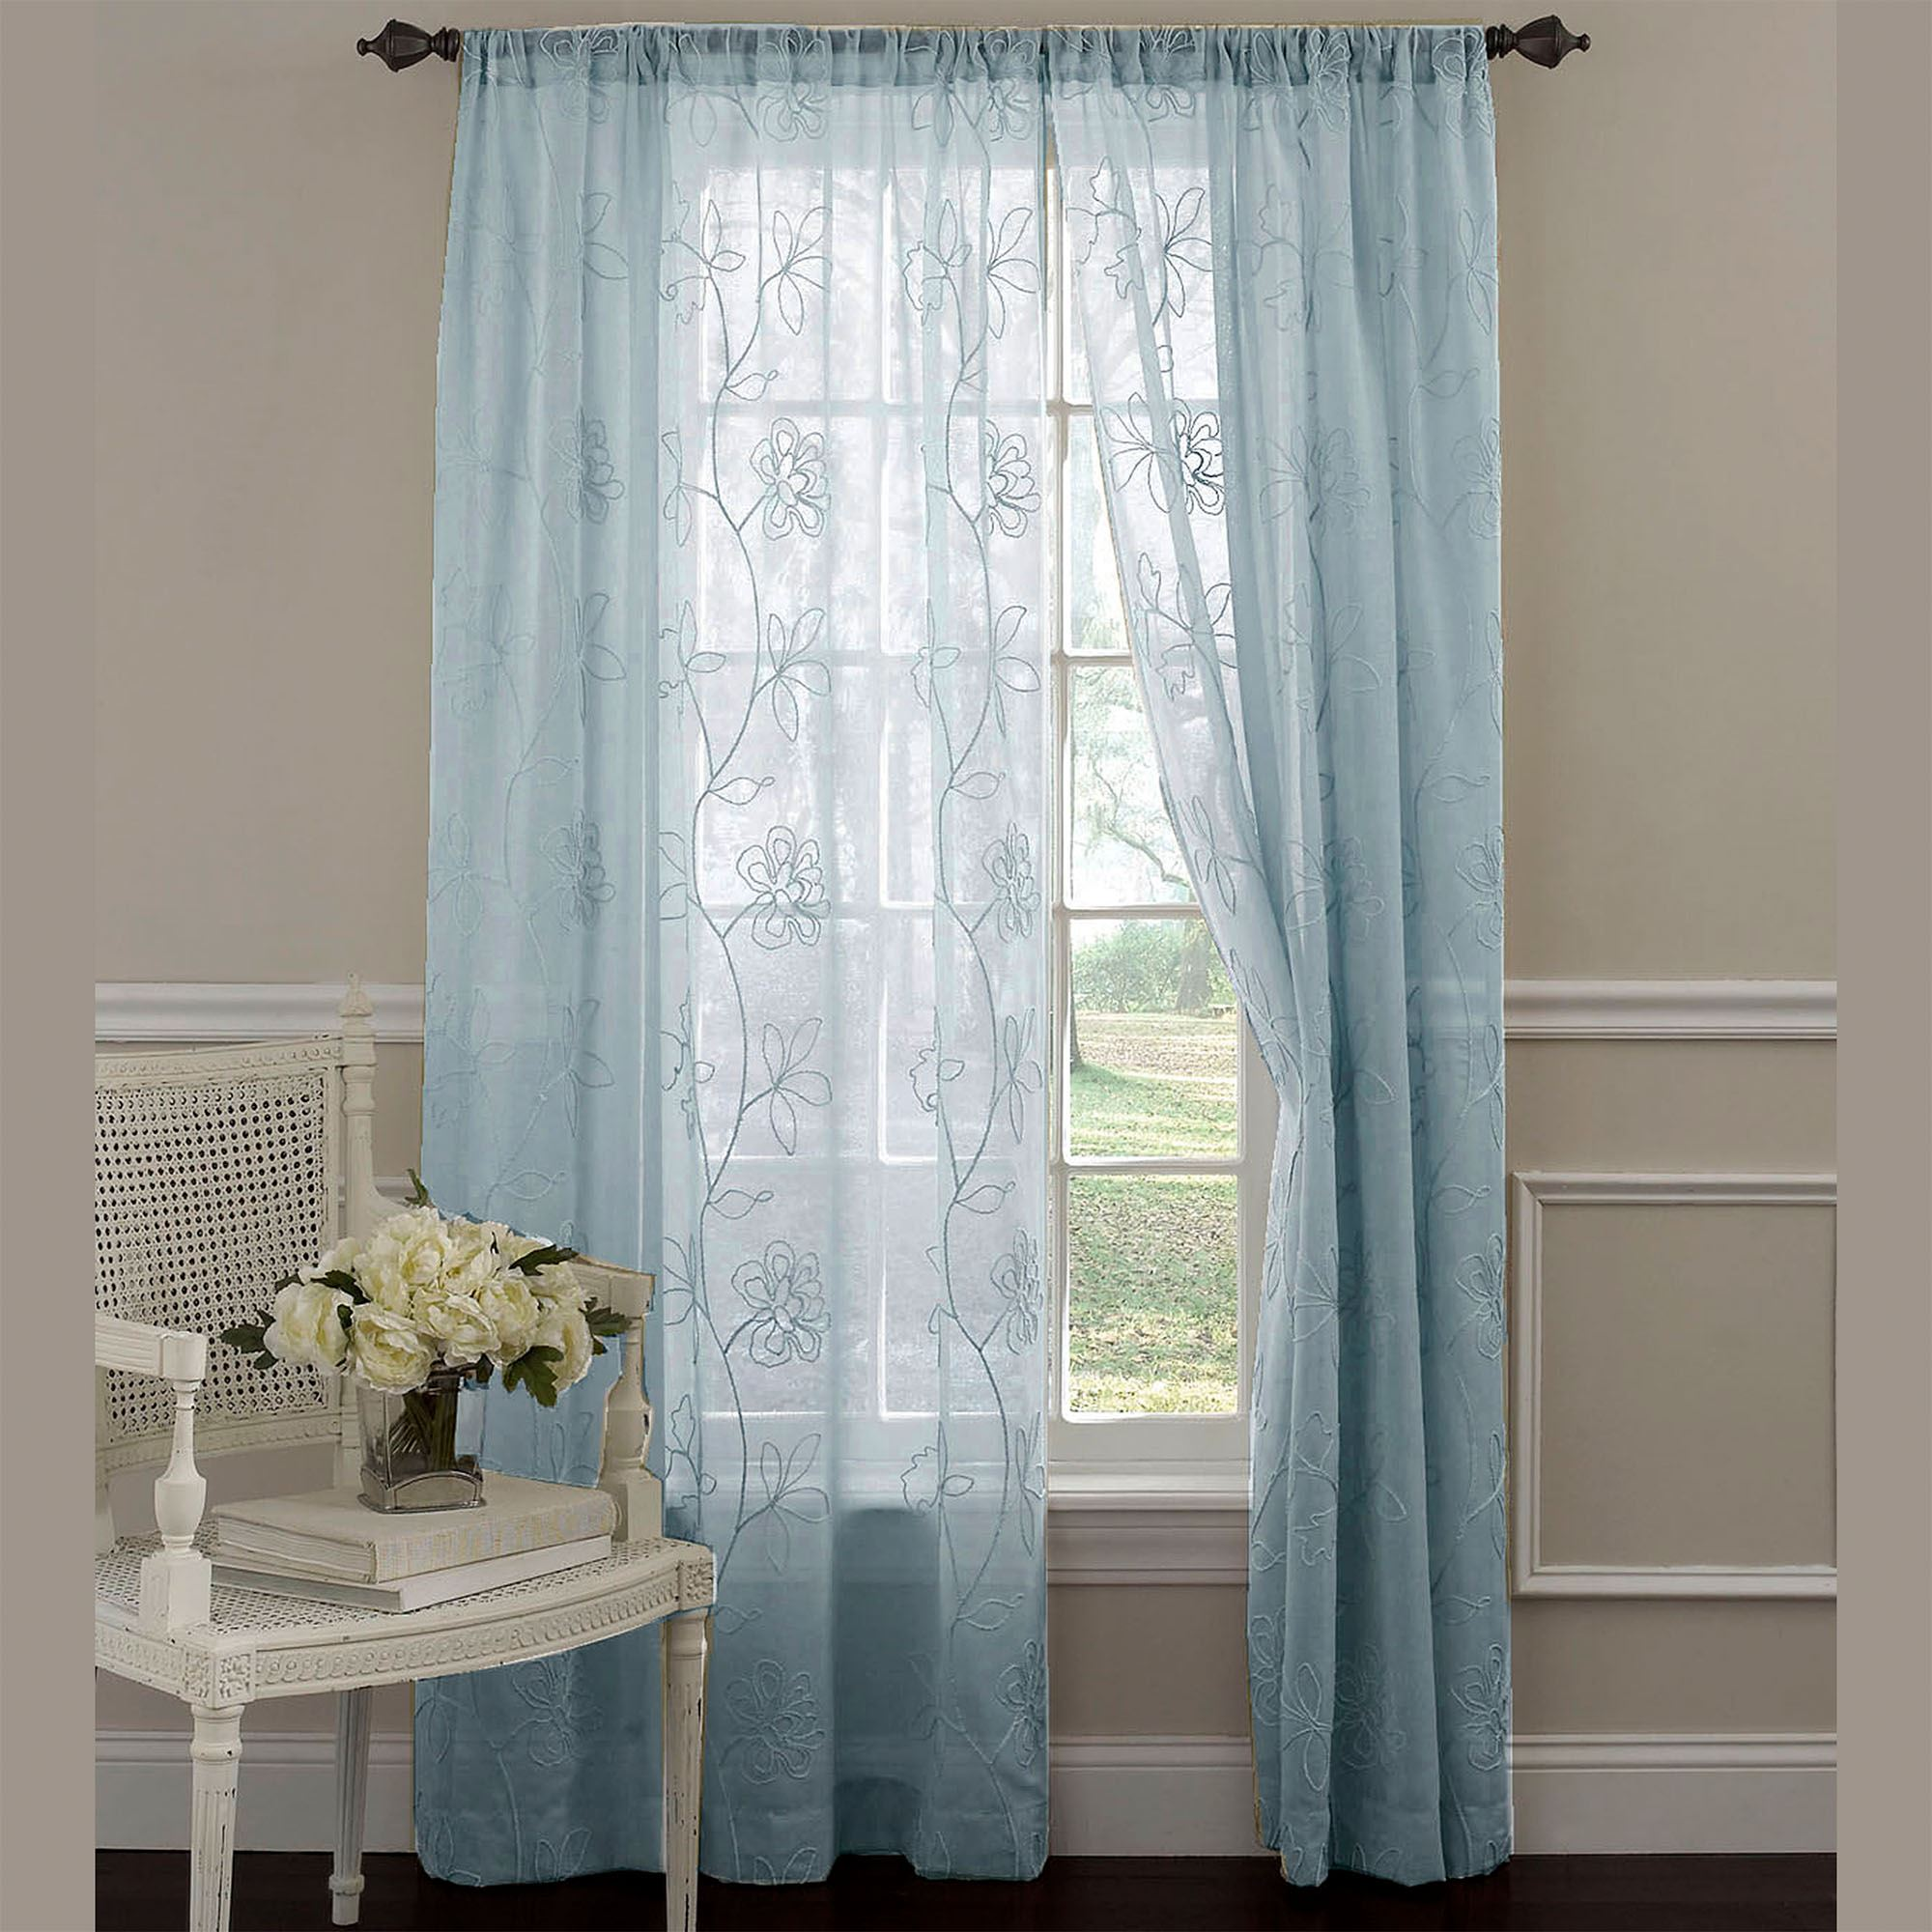 suntex and by panel drapes sheer curtains gossamer embroidered curtain window